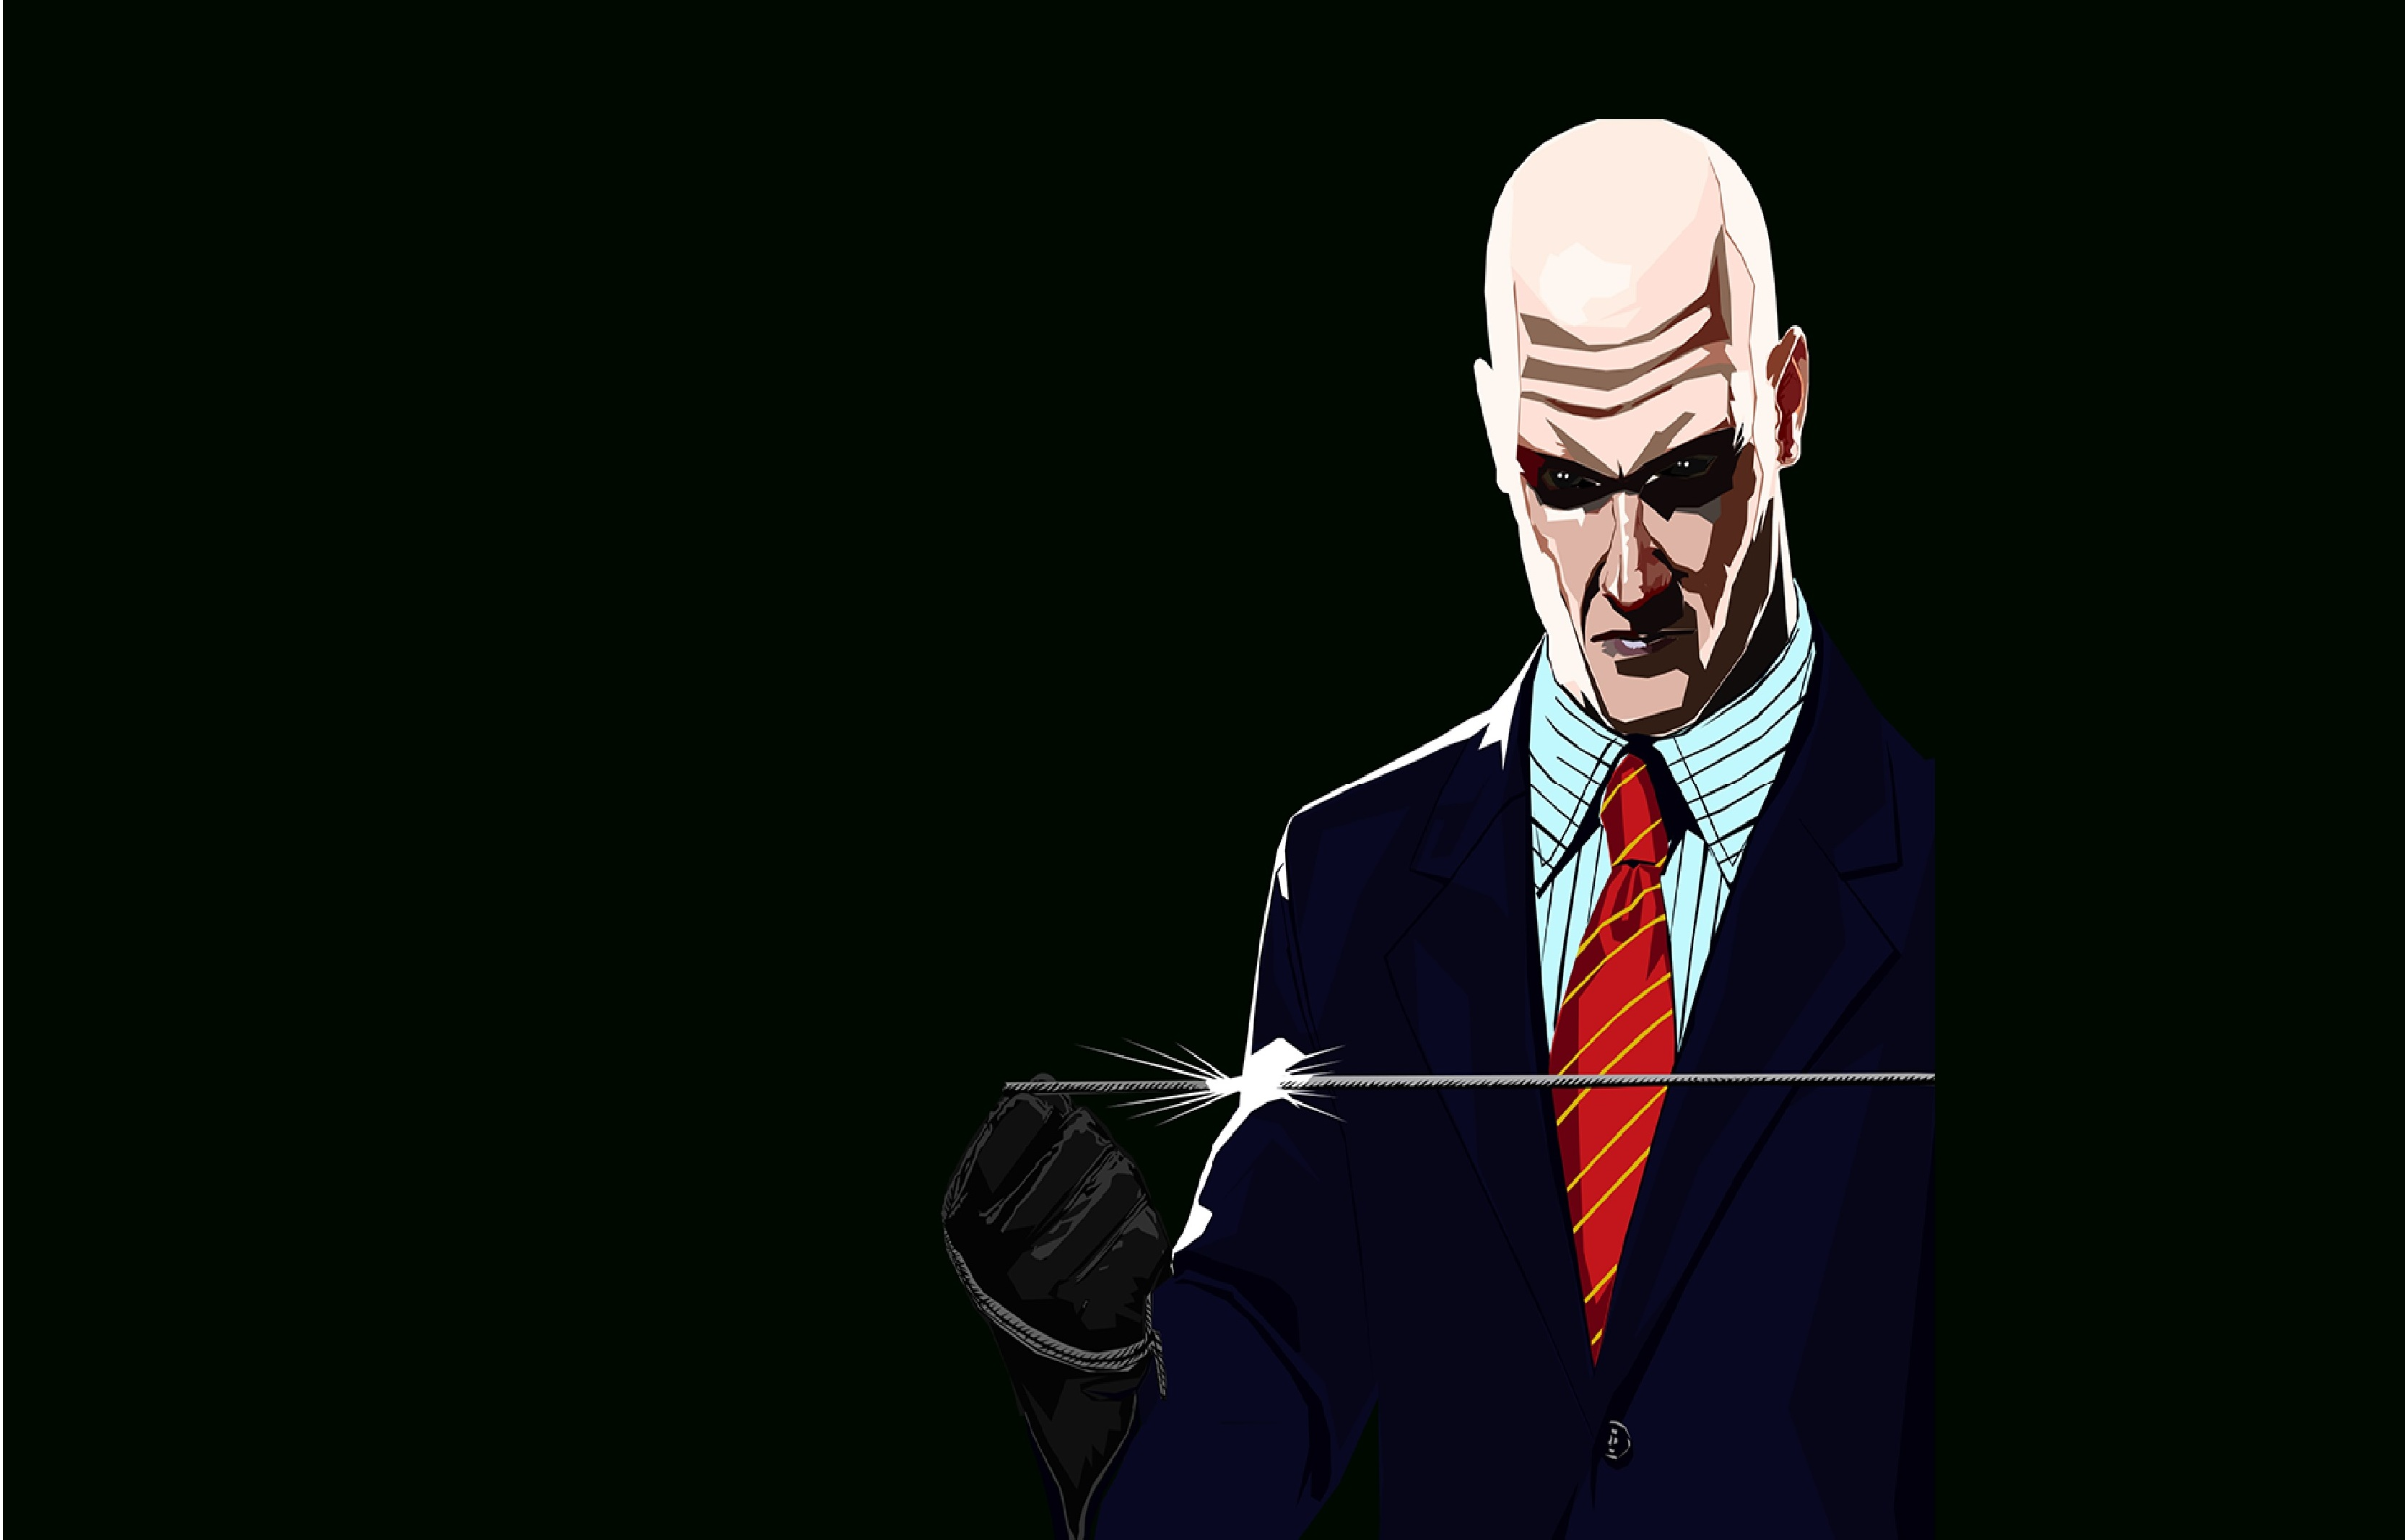 Hitman Illustration Digital Painting